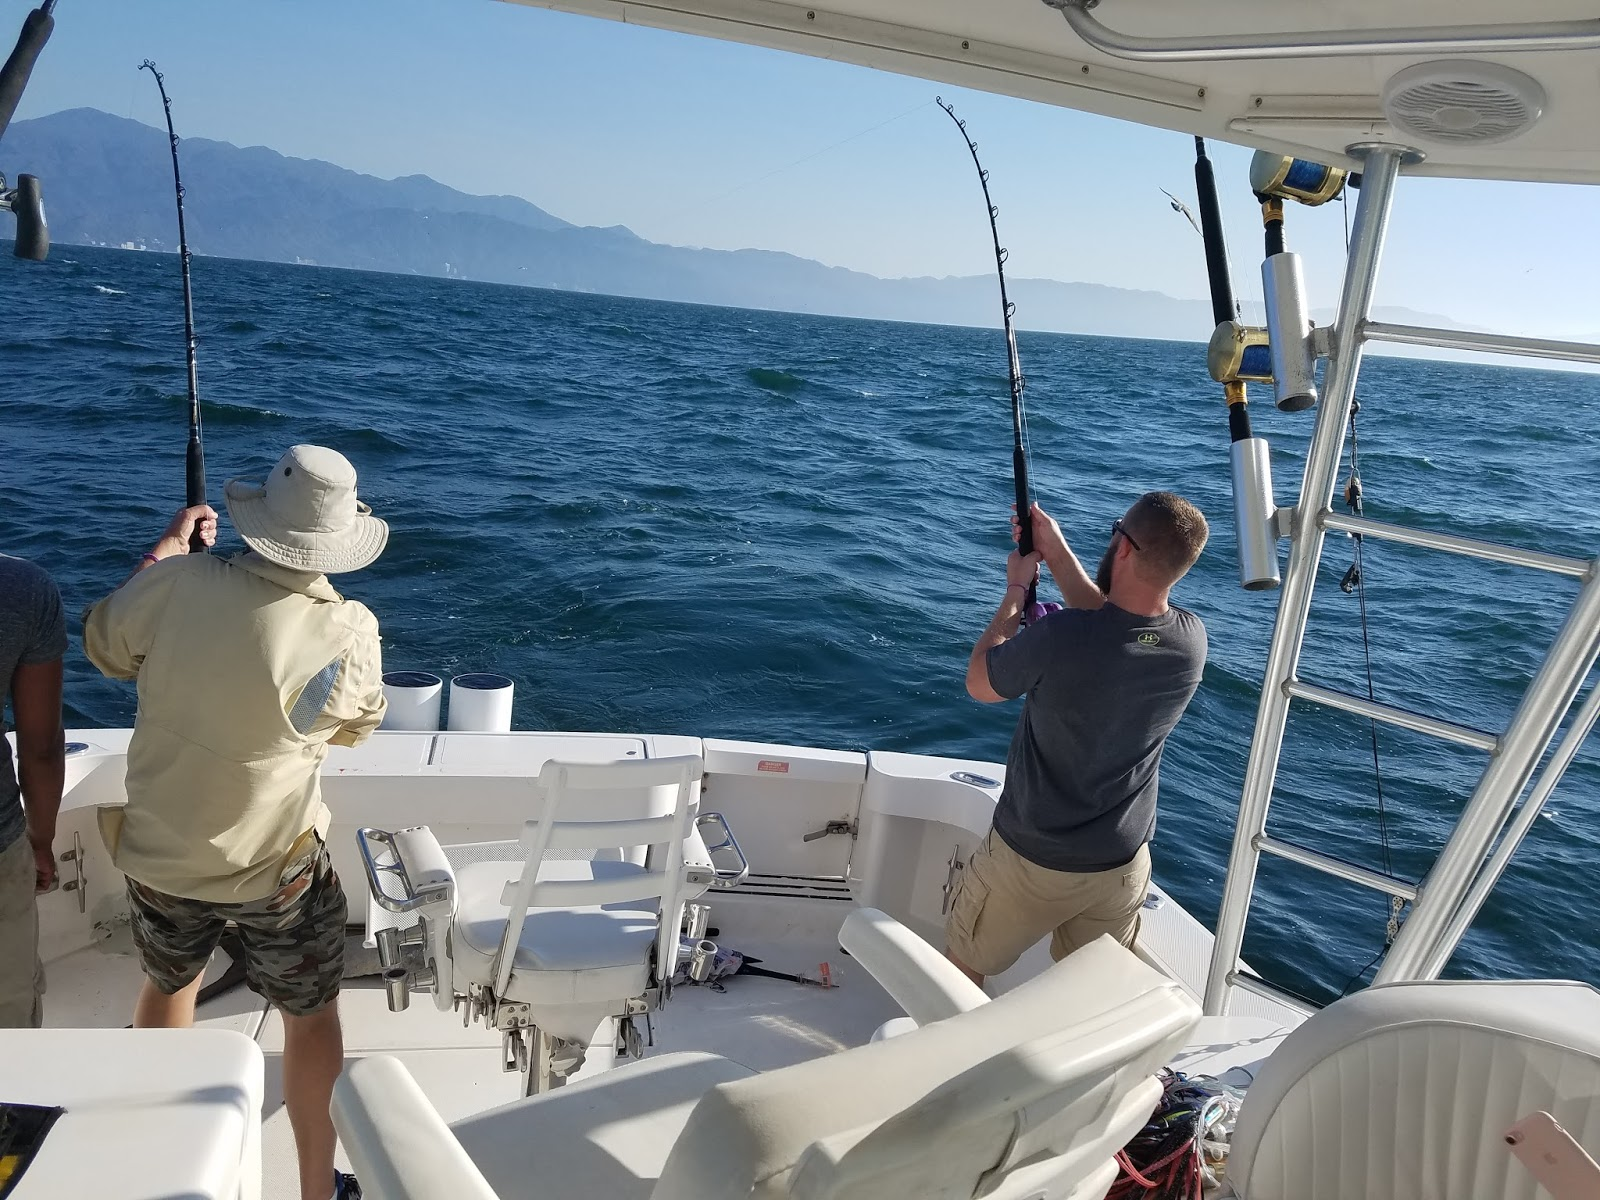 pv sportfishing puerto vallarta client fishing review ForFishing Puerto Vallarta